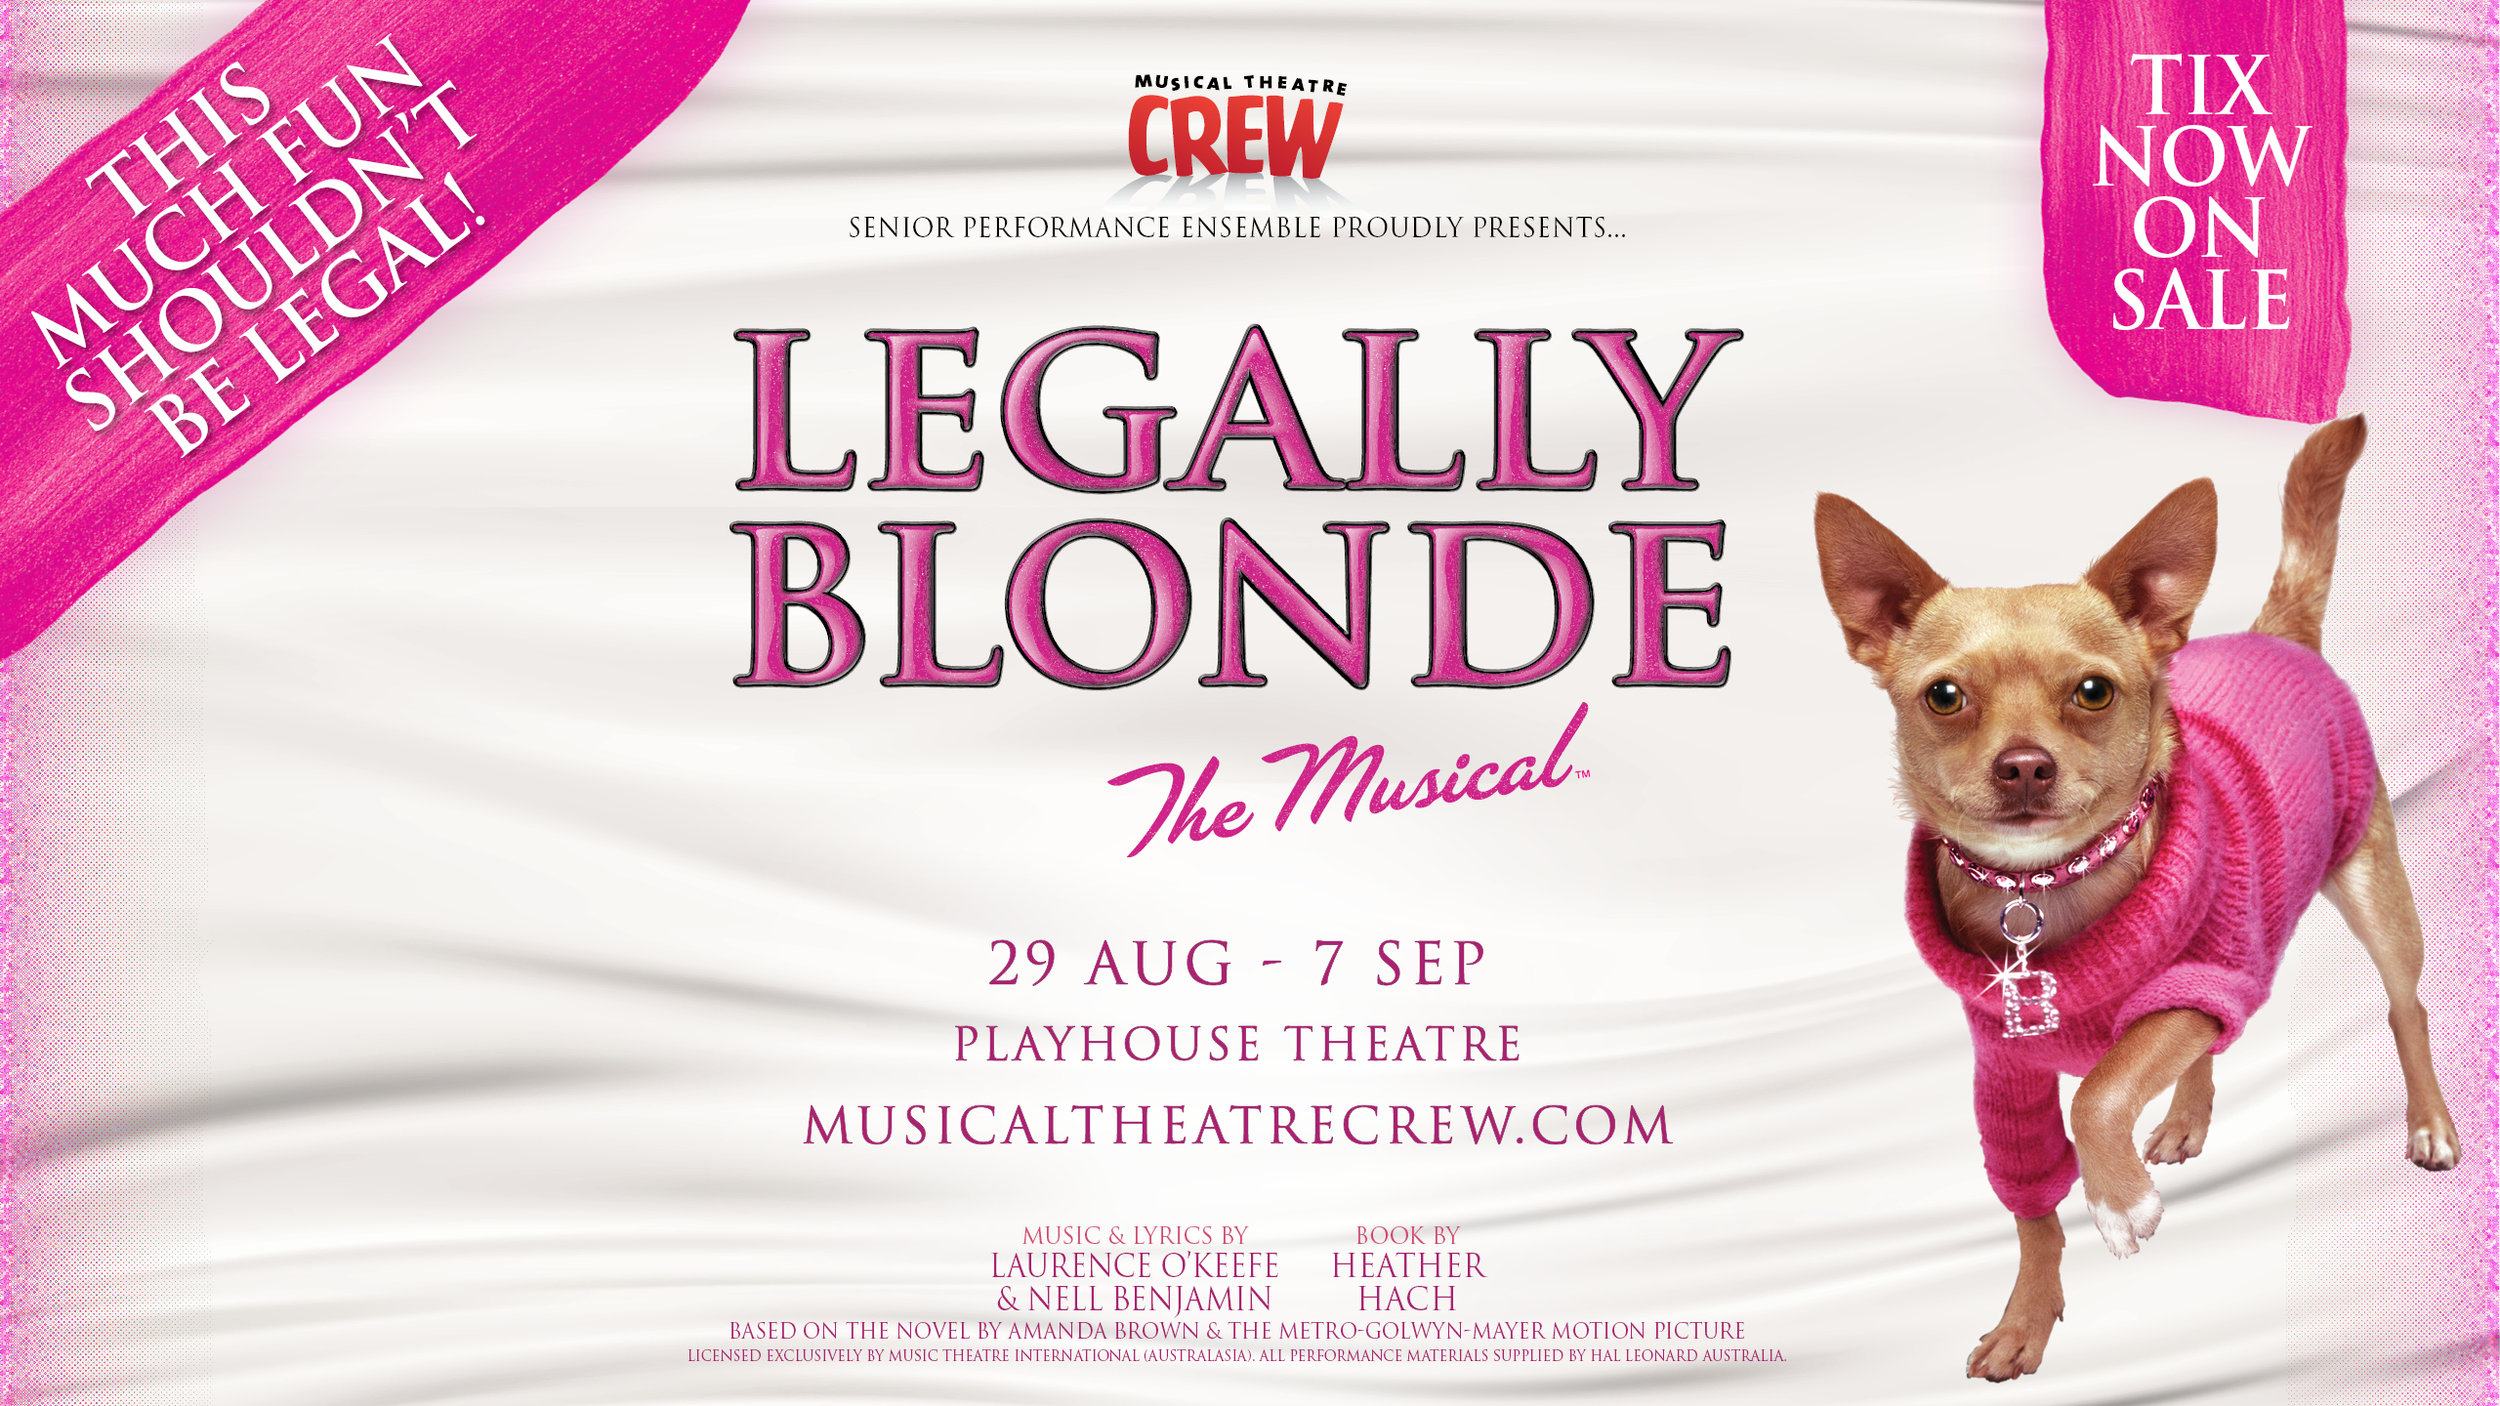 Legally Blonde 2019 Playhouse